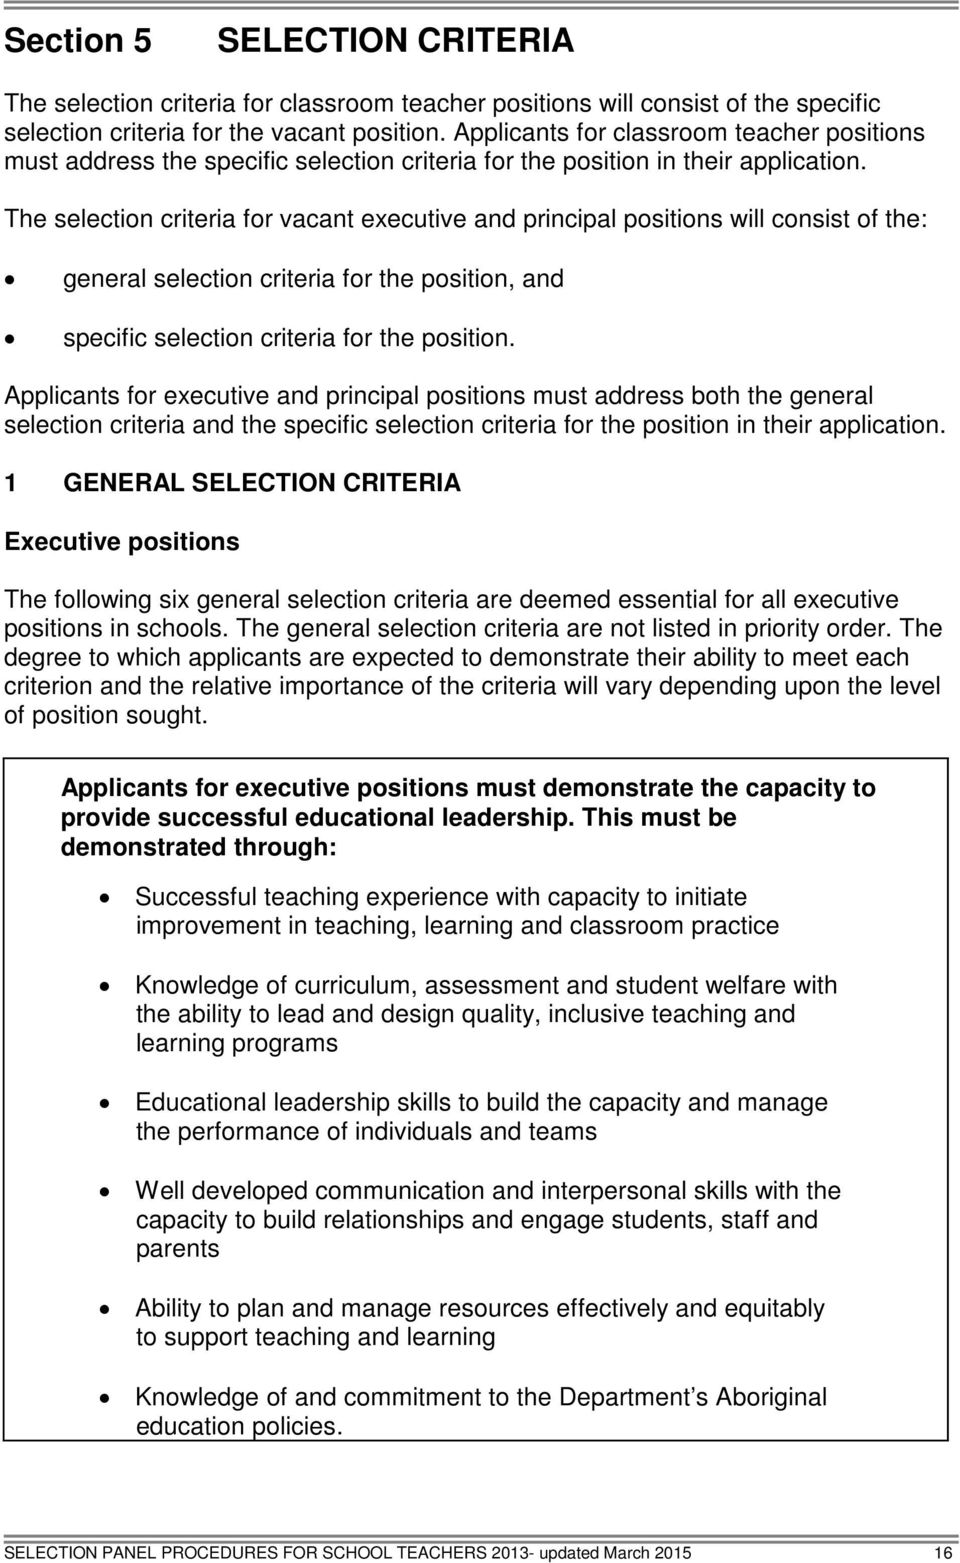 The selection criteria for vacant executive and principal positions will consist of the: general selection criteria for the position, and specific selection criteria for the position.